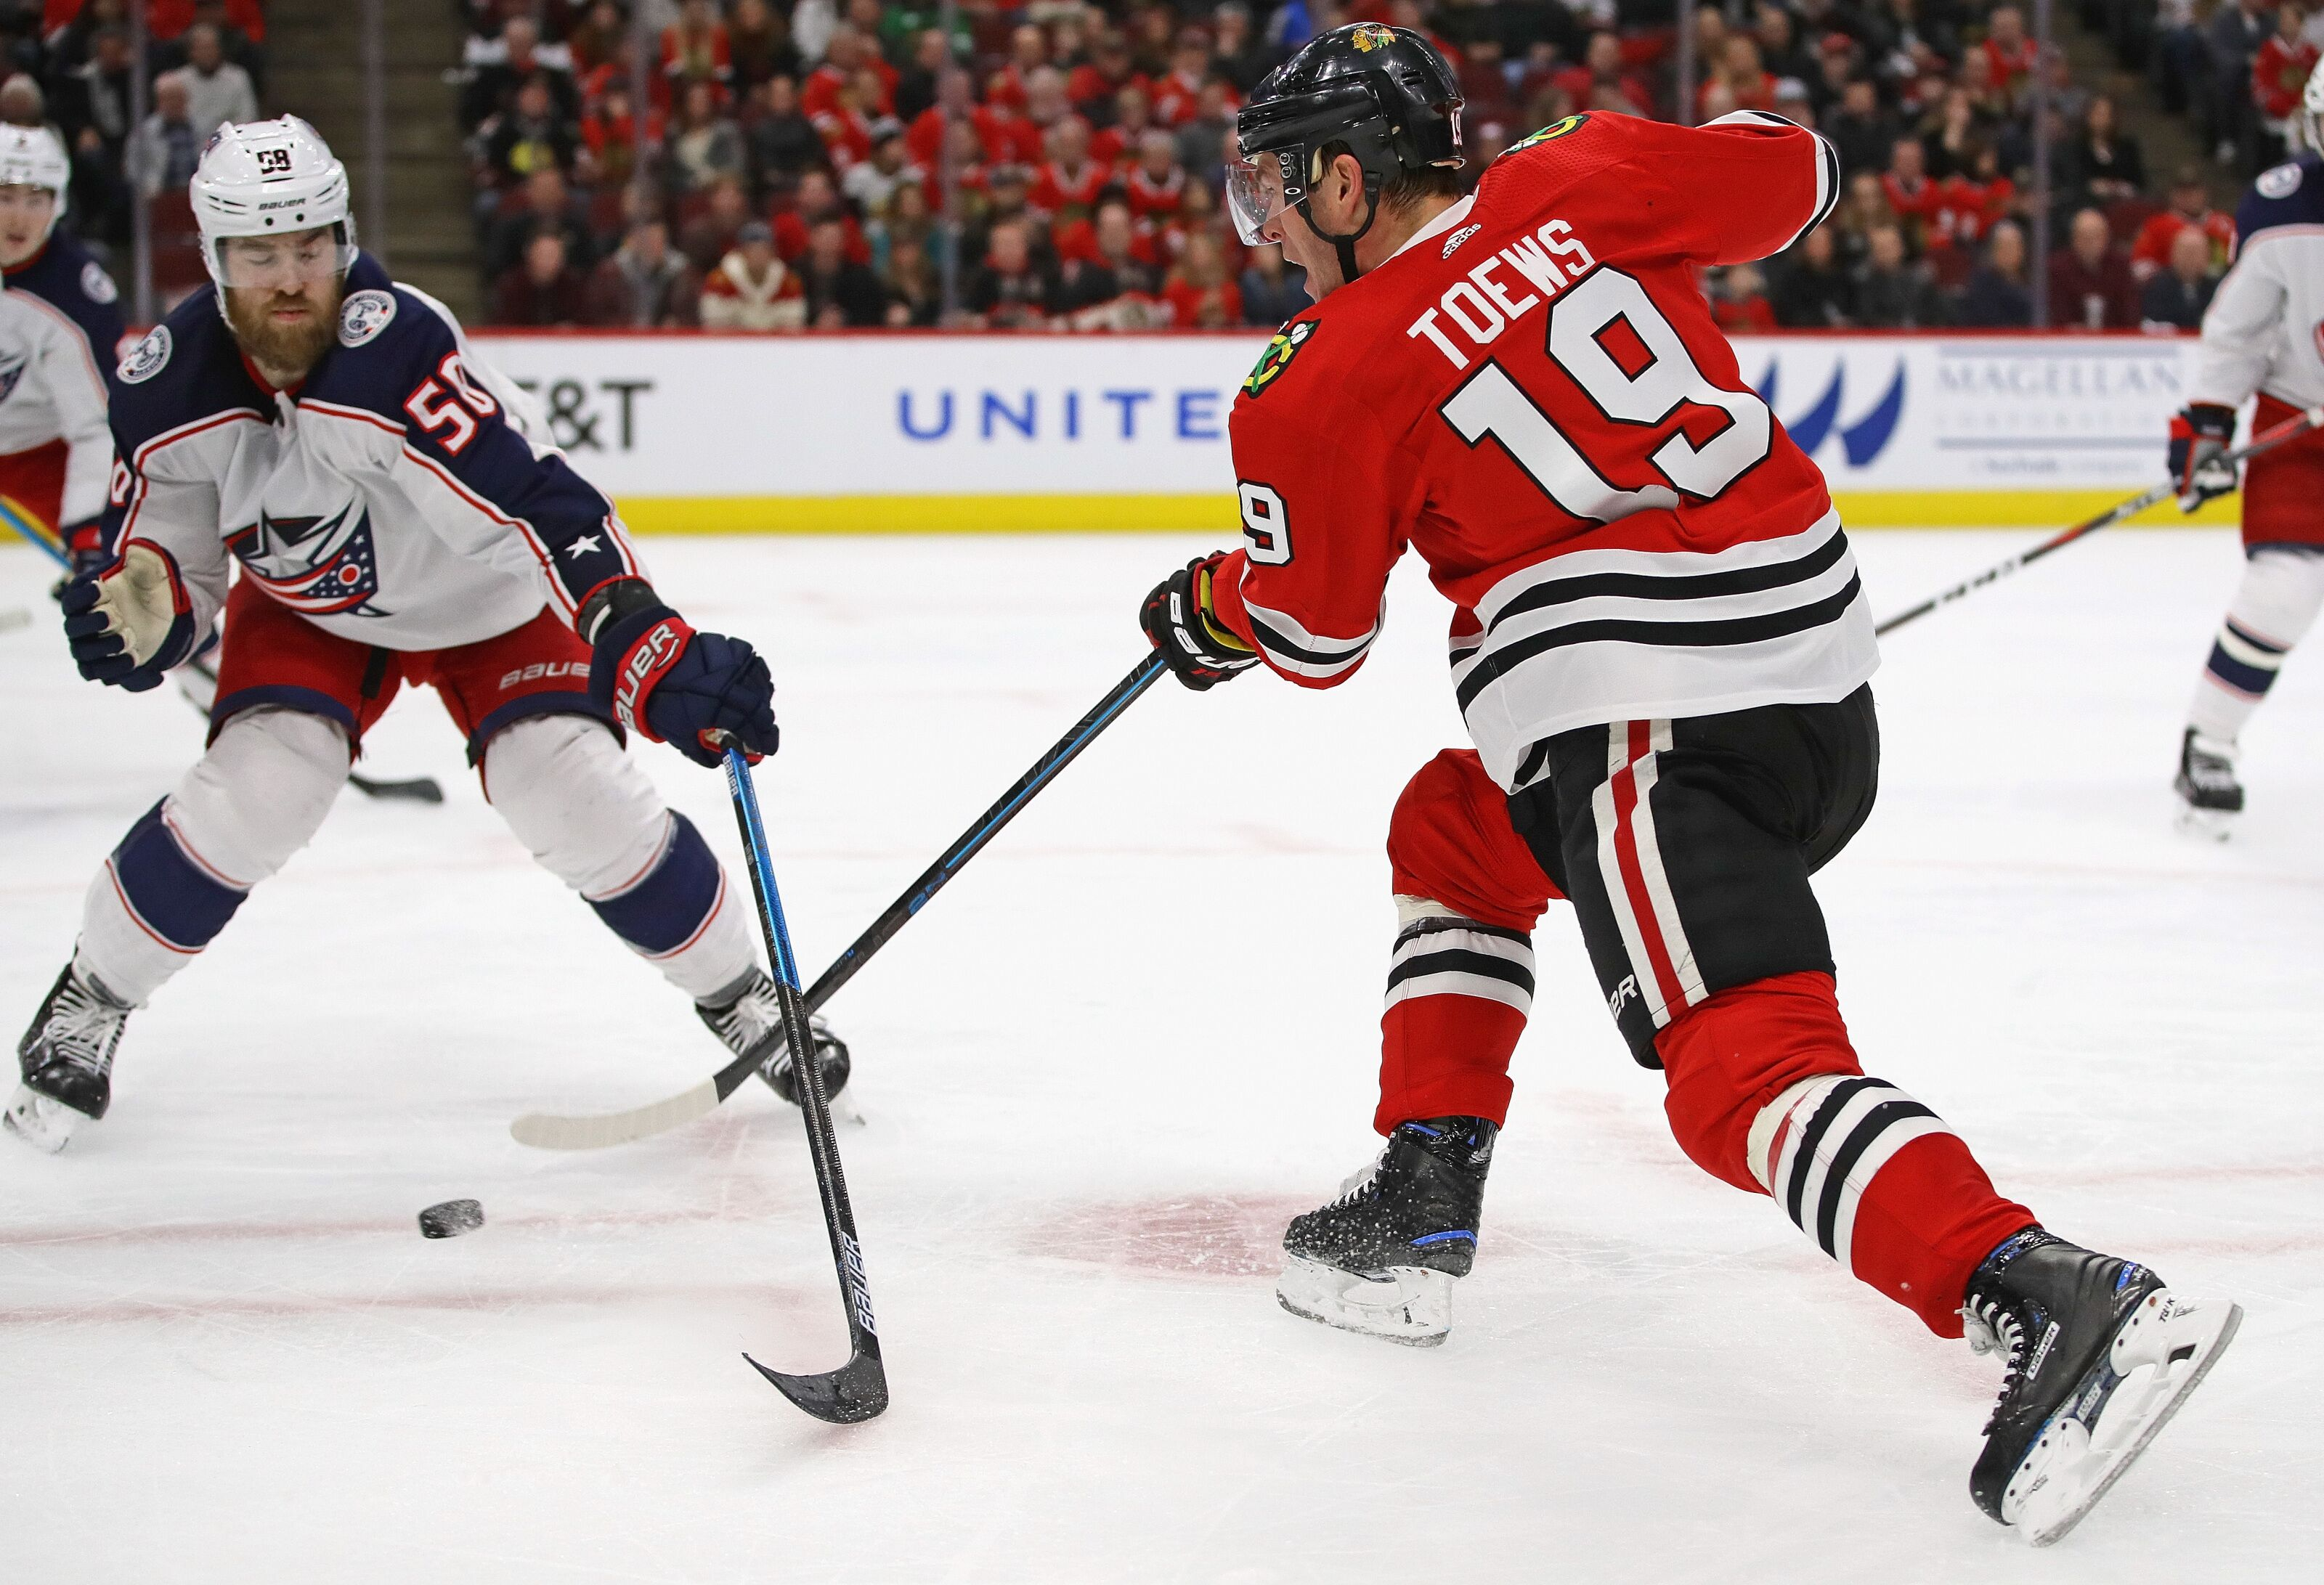 Chicago Blackhawks: Jonathan Toews comes up clutch once again